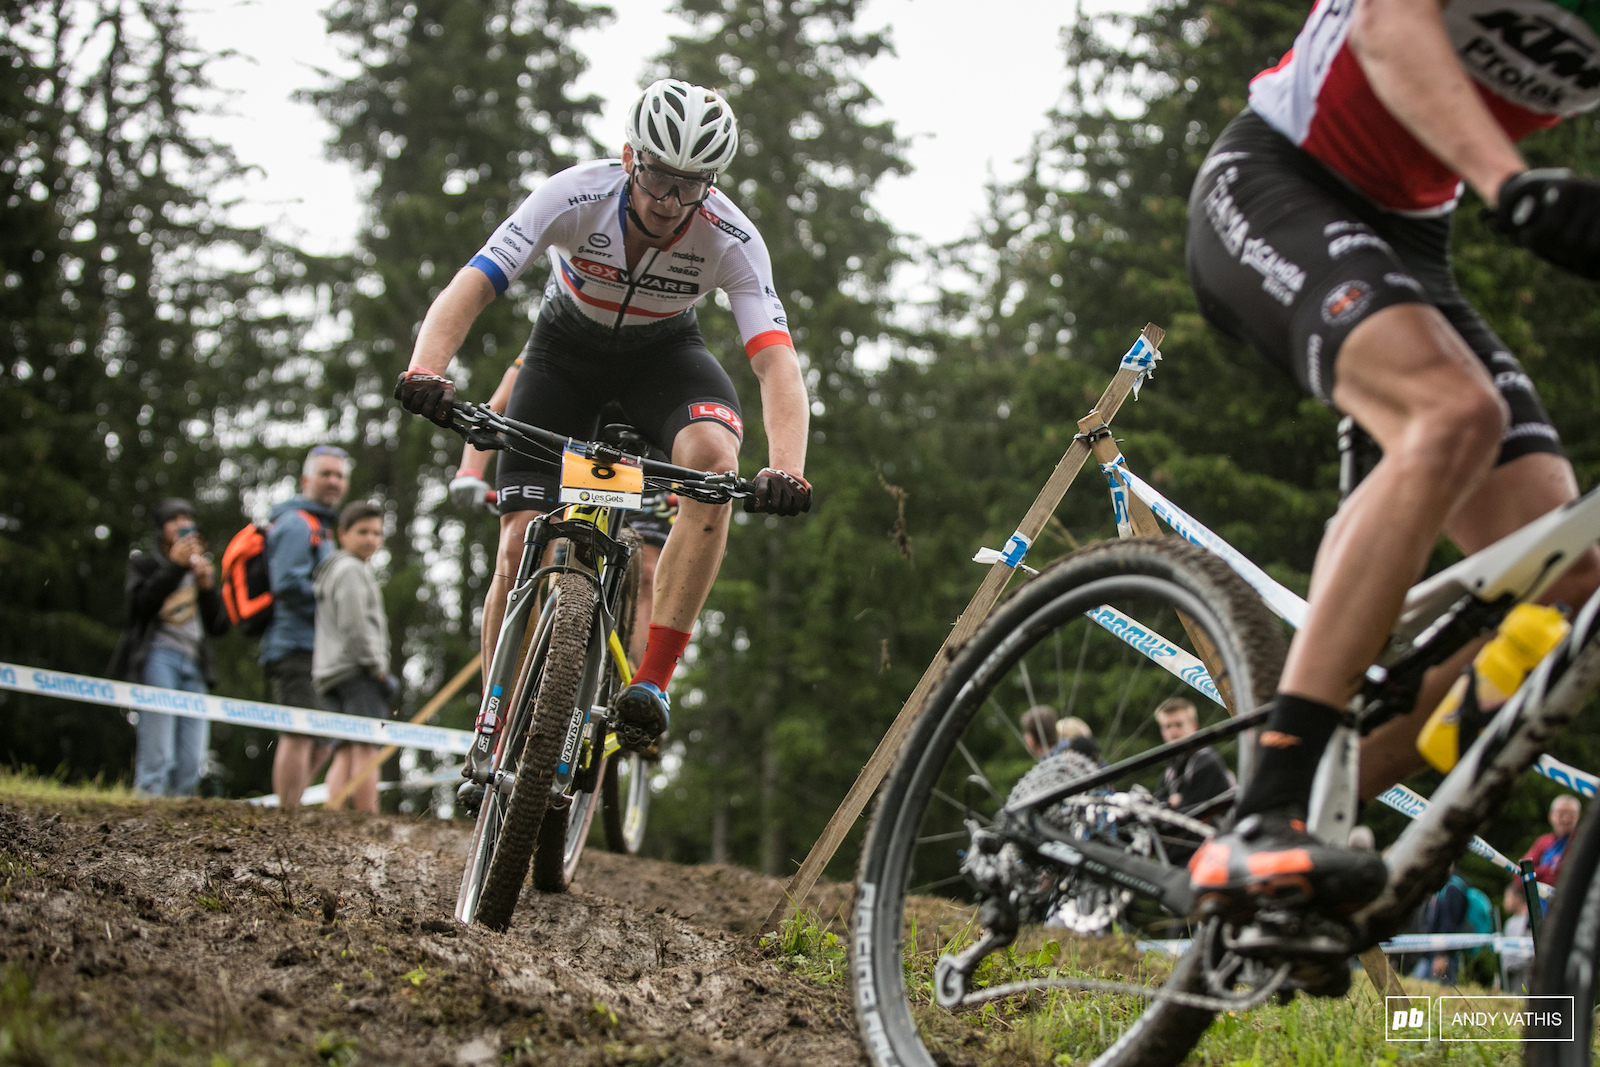 Second place for Martin Vidaurre Kossmann after clawing back a few places.